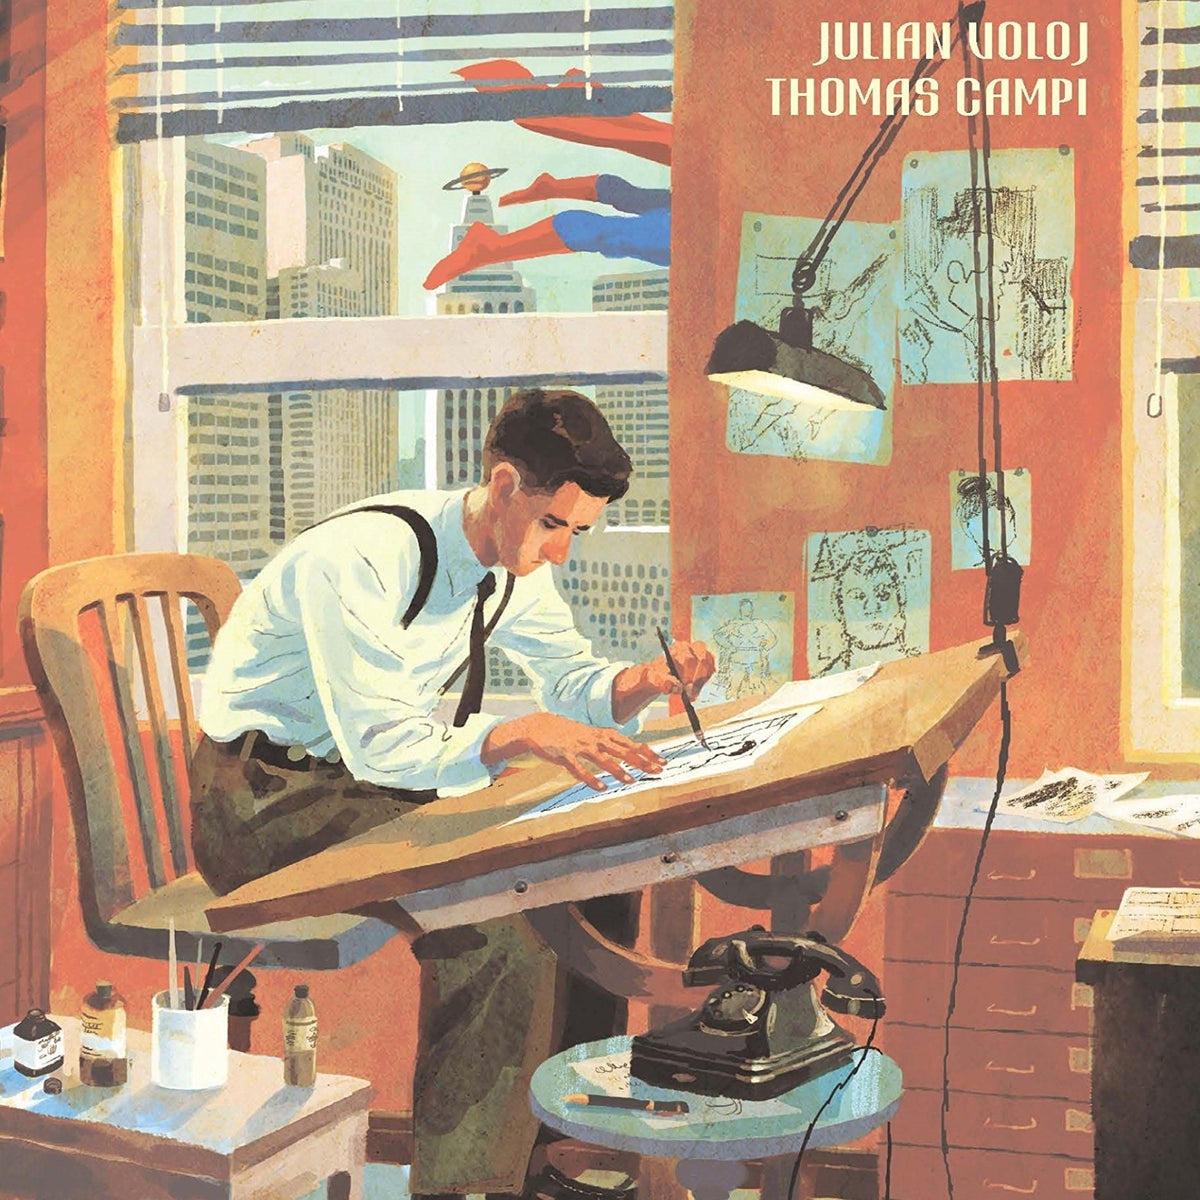 A detail from the cover of 'The Joe Shuster Story: The Artist Behind Superman.'